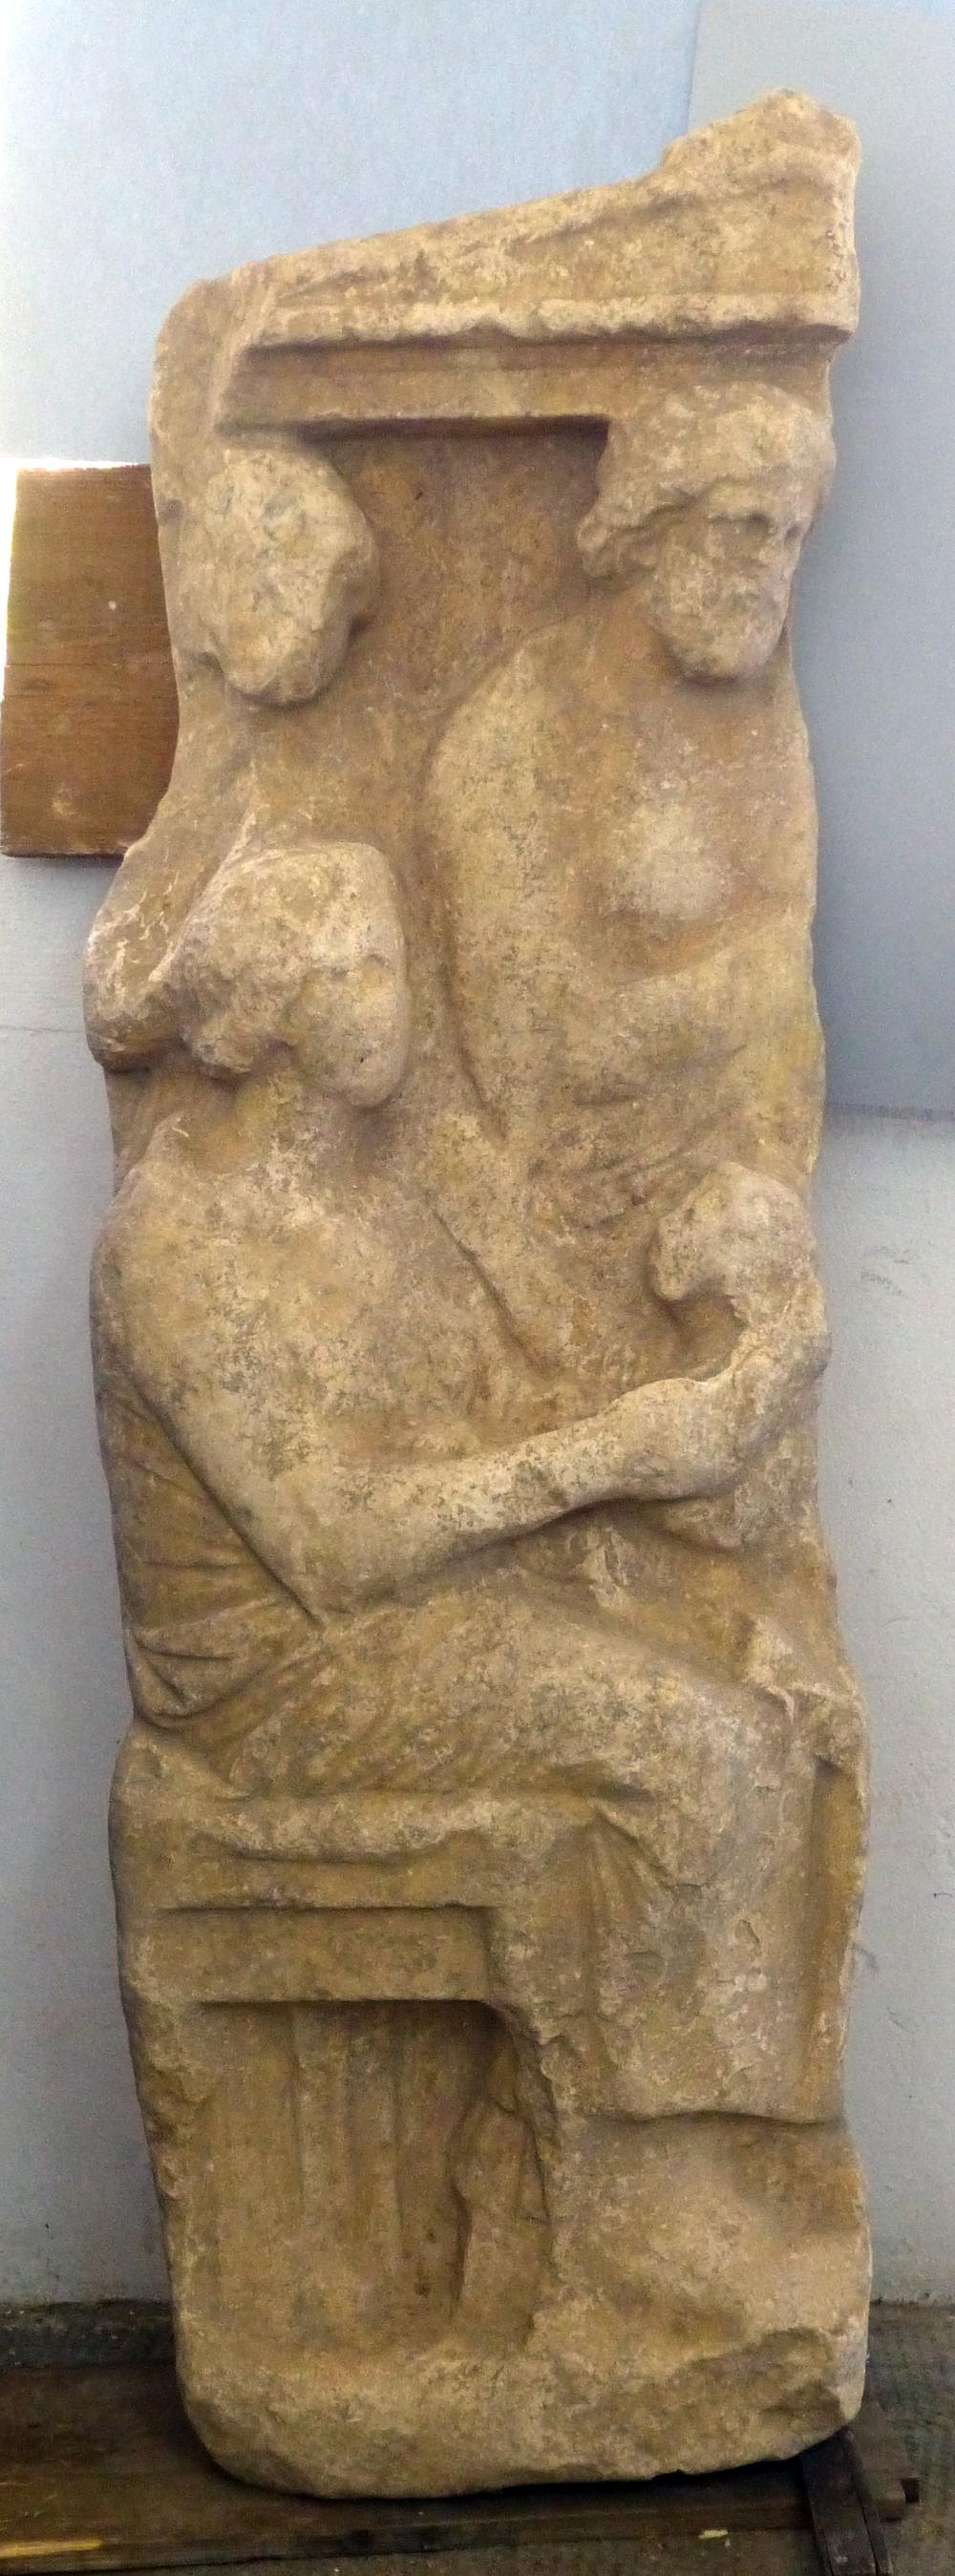 German archaeological institute finds grave stele at for Graue stuhle